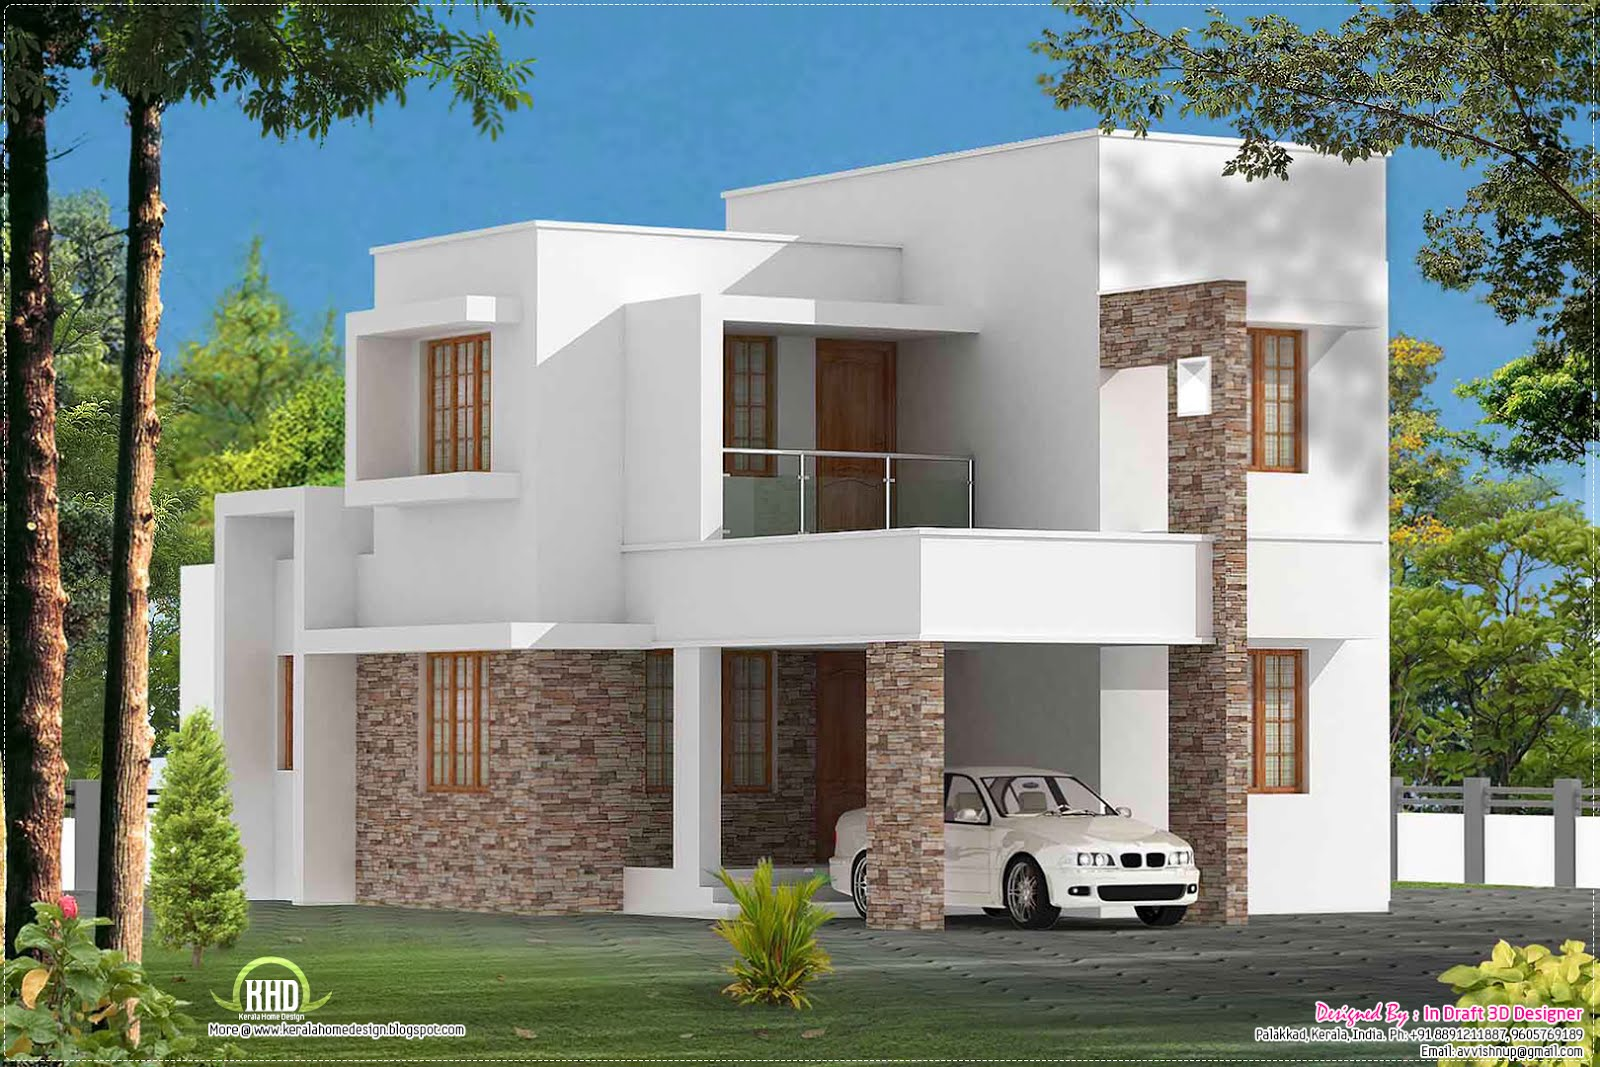 Simple 3 Bed Room Contemporary Villa Kerala Home Design And Floor Plans